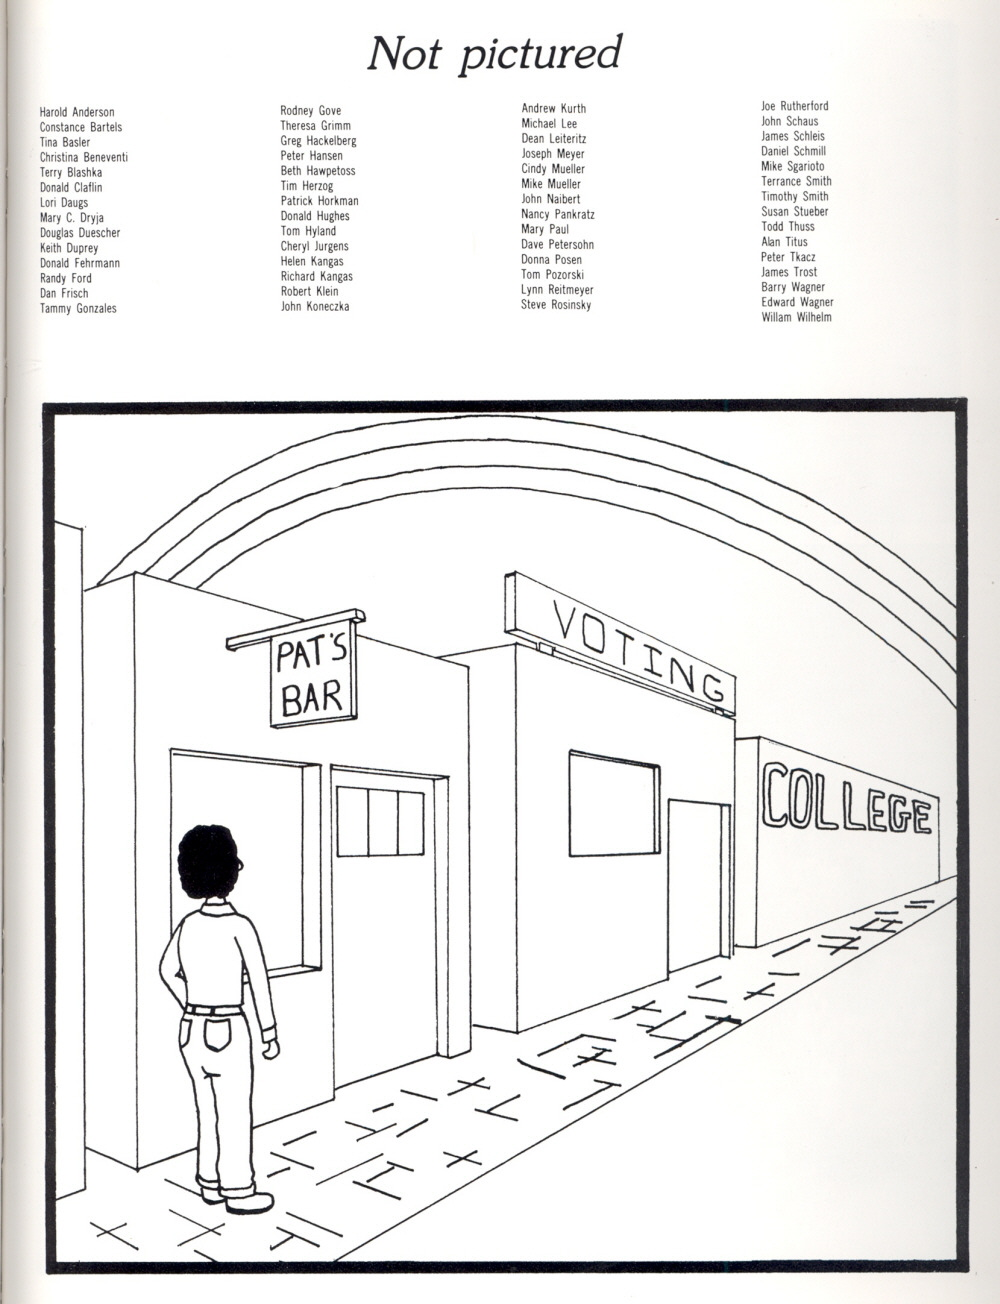 Page 163, 1980 Manitowoc Lincoln High School Yearbook and